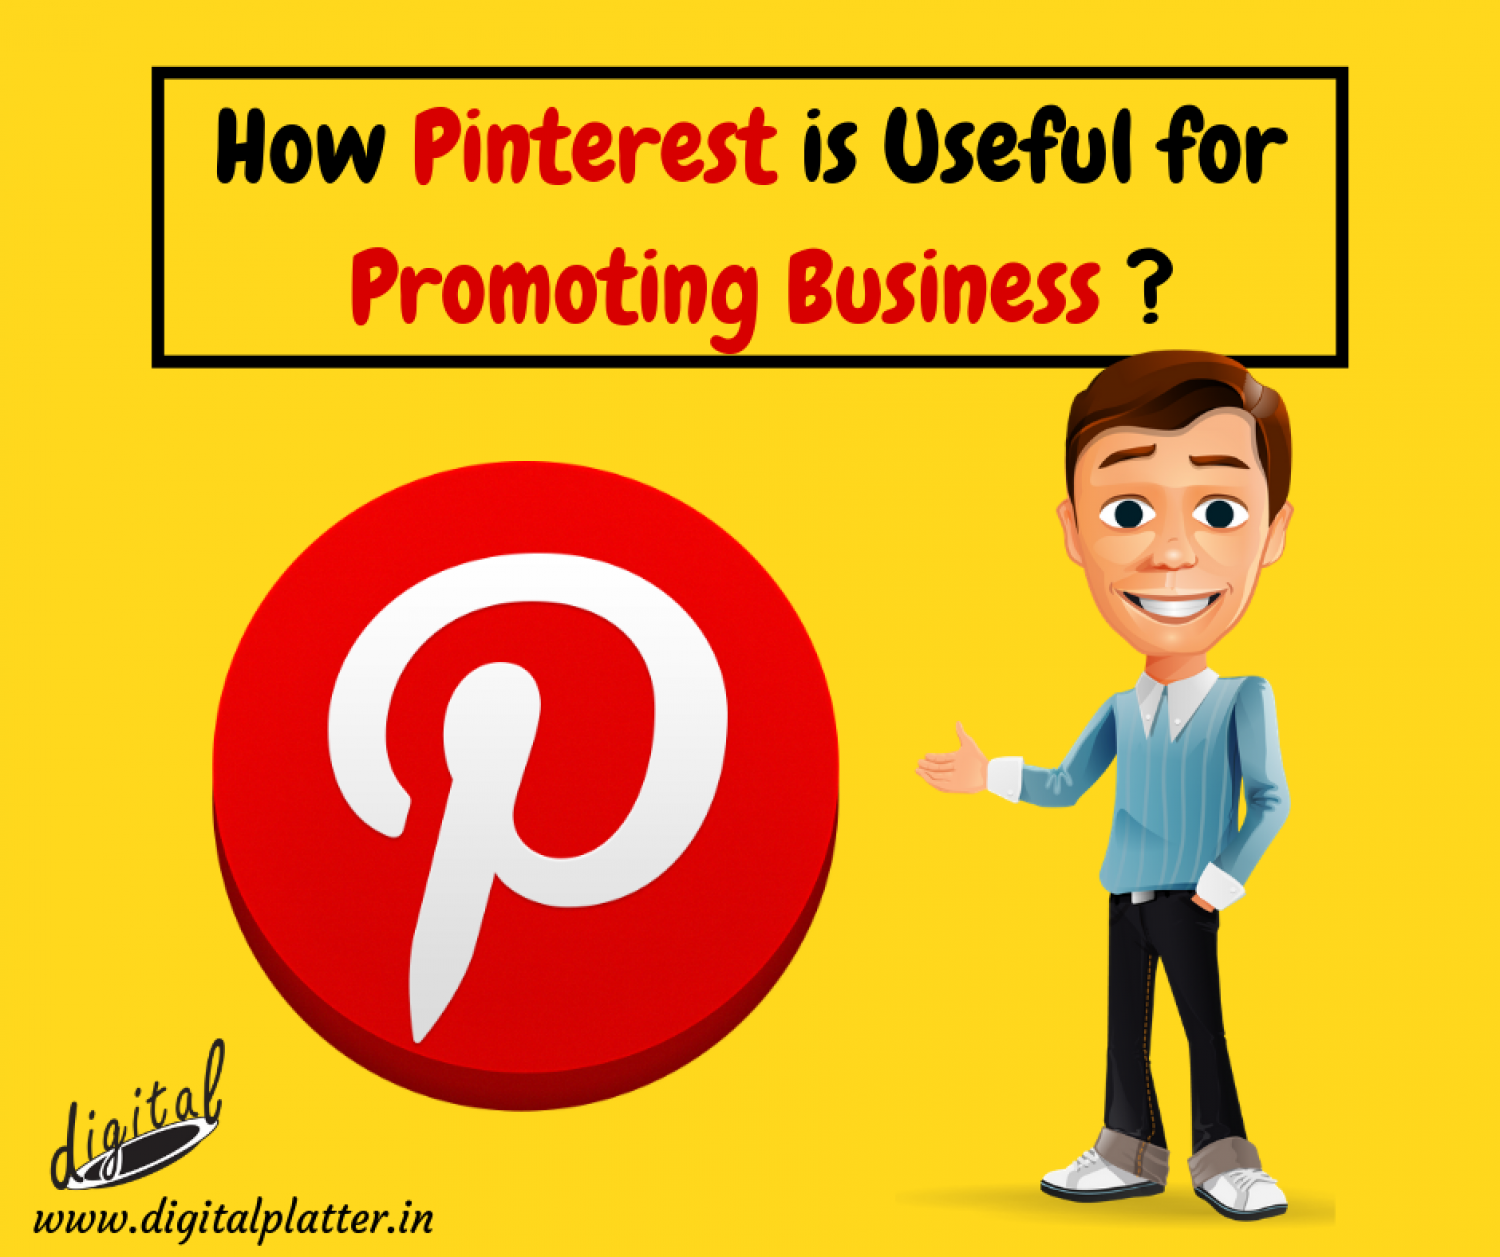 How Pinterest is Useful for Promoting Business Infographic